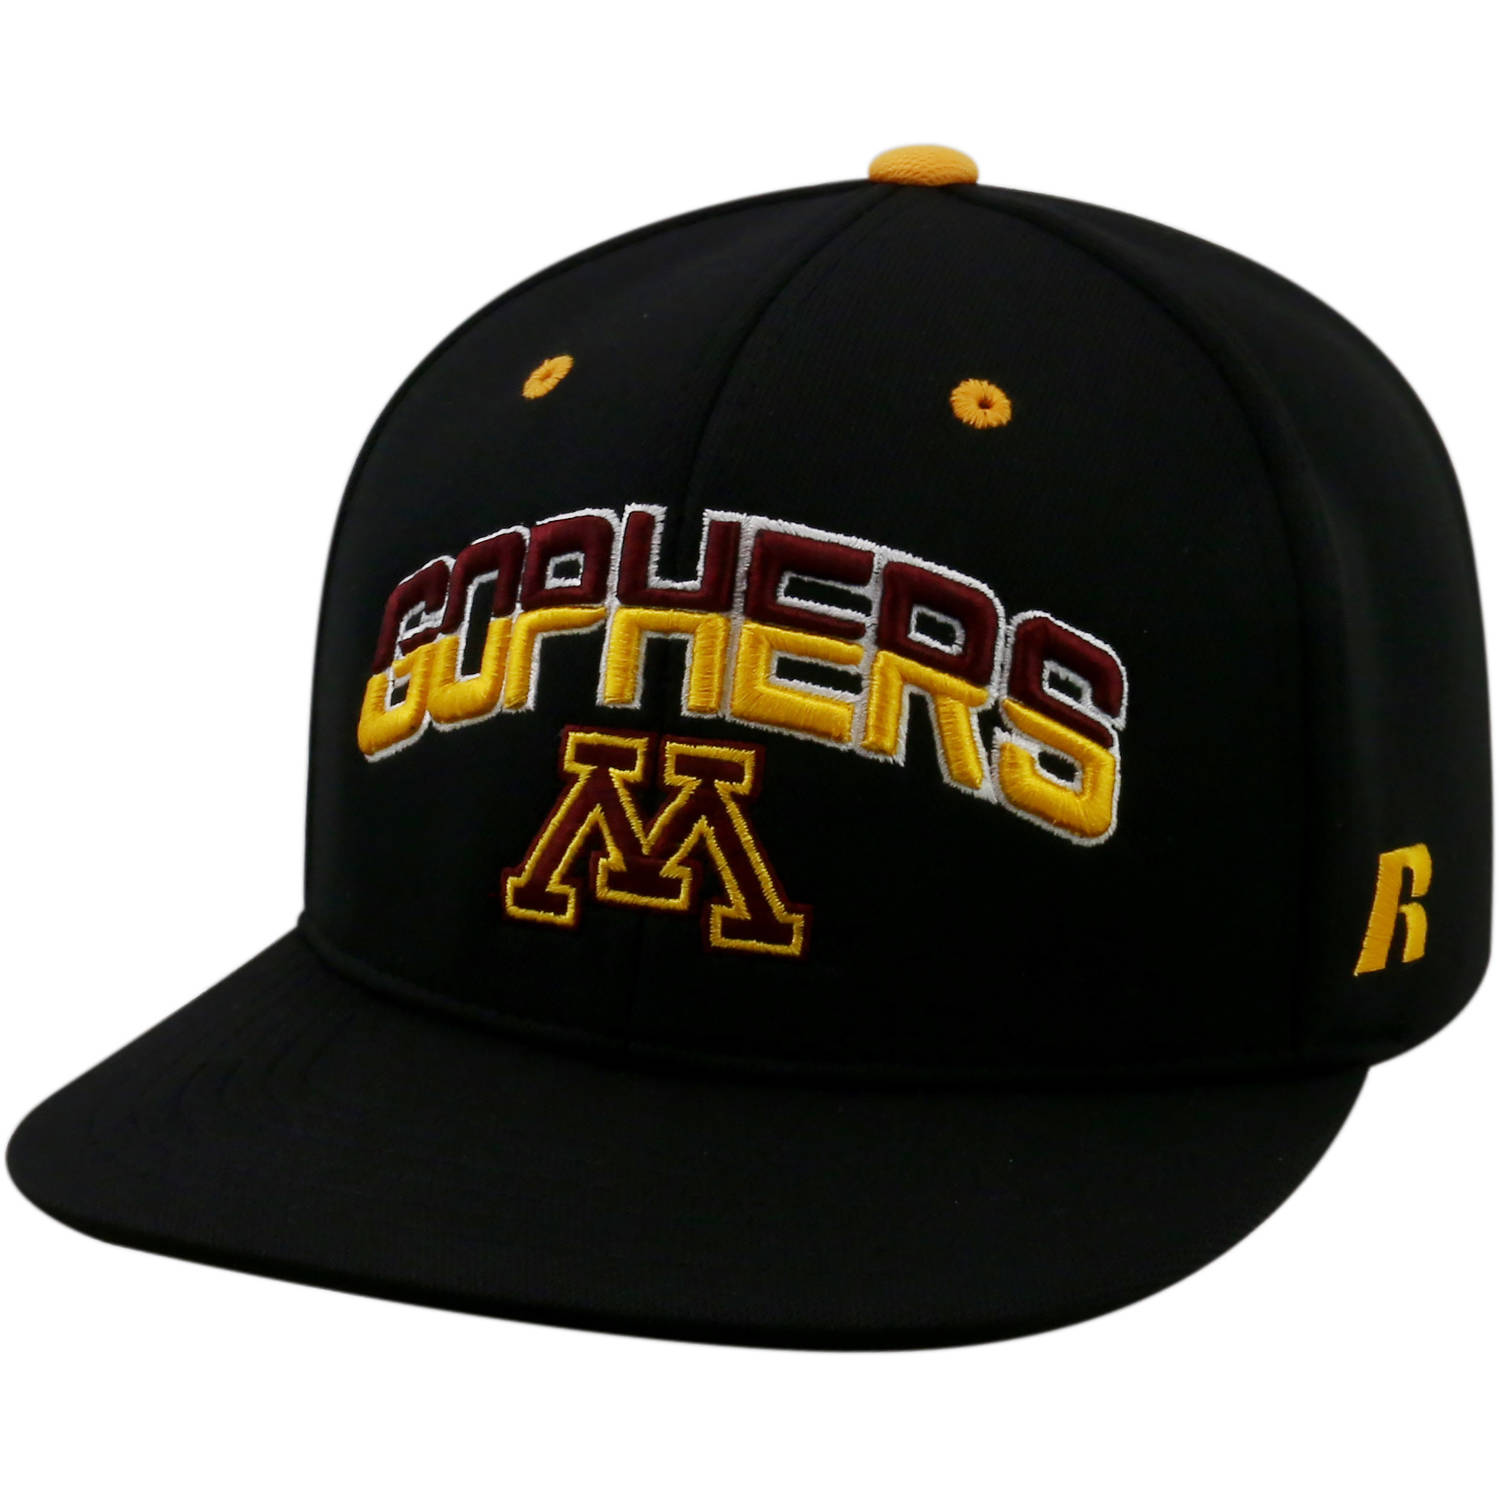 University Of Minnesota Golden Gophers Flatbill Baseball Cap